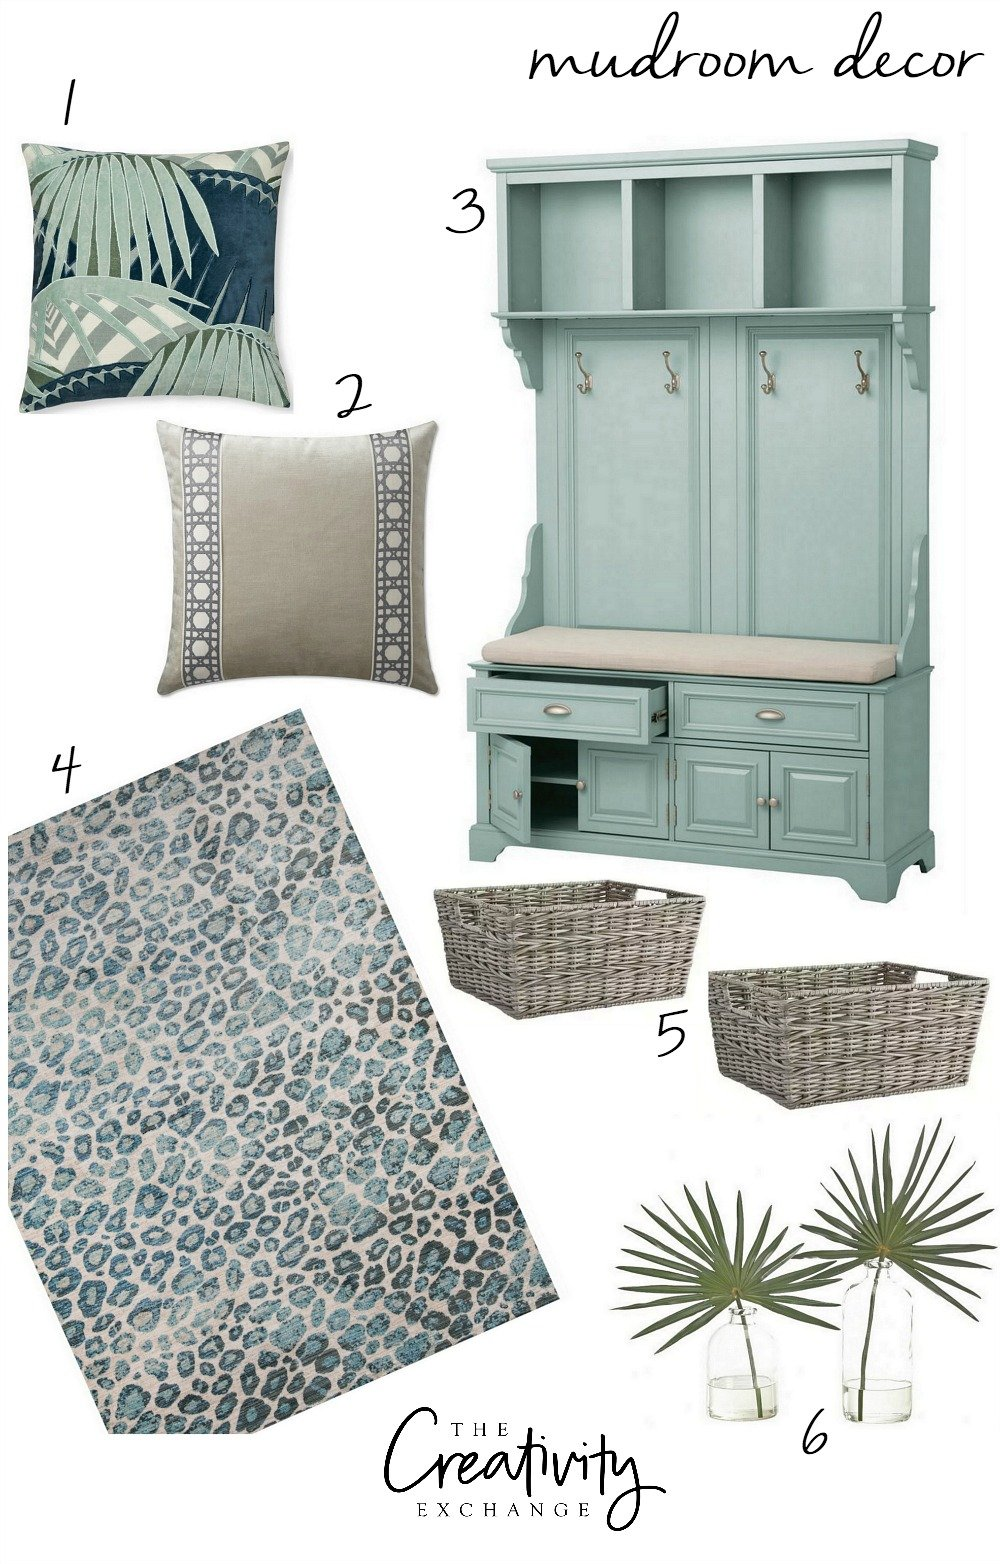 Mudroom Design Board with Decor and Products